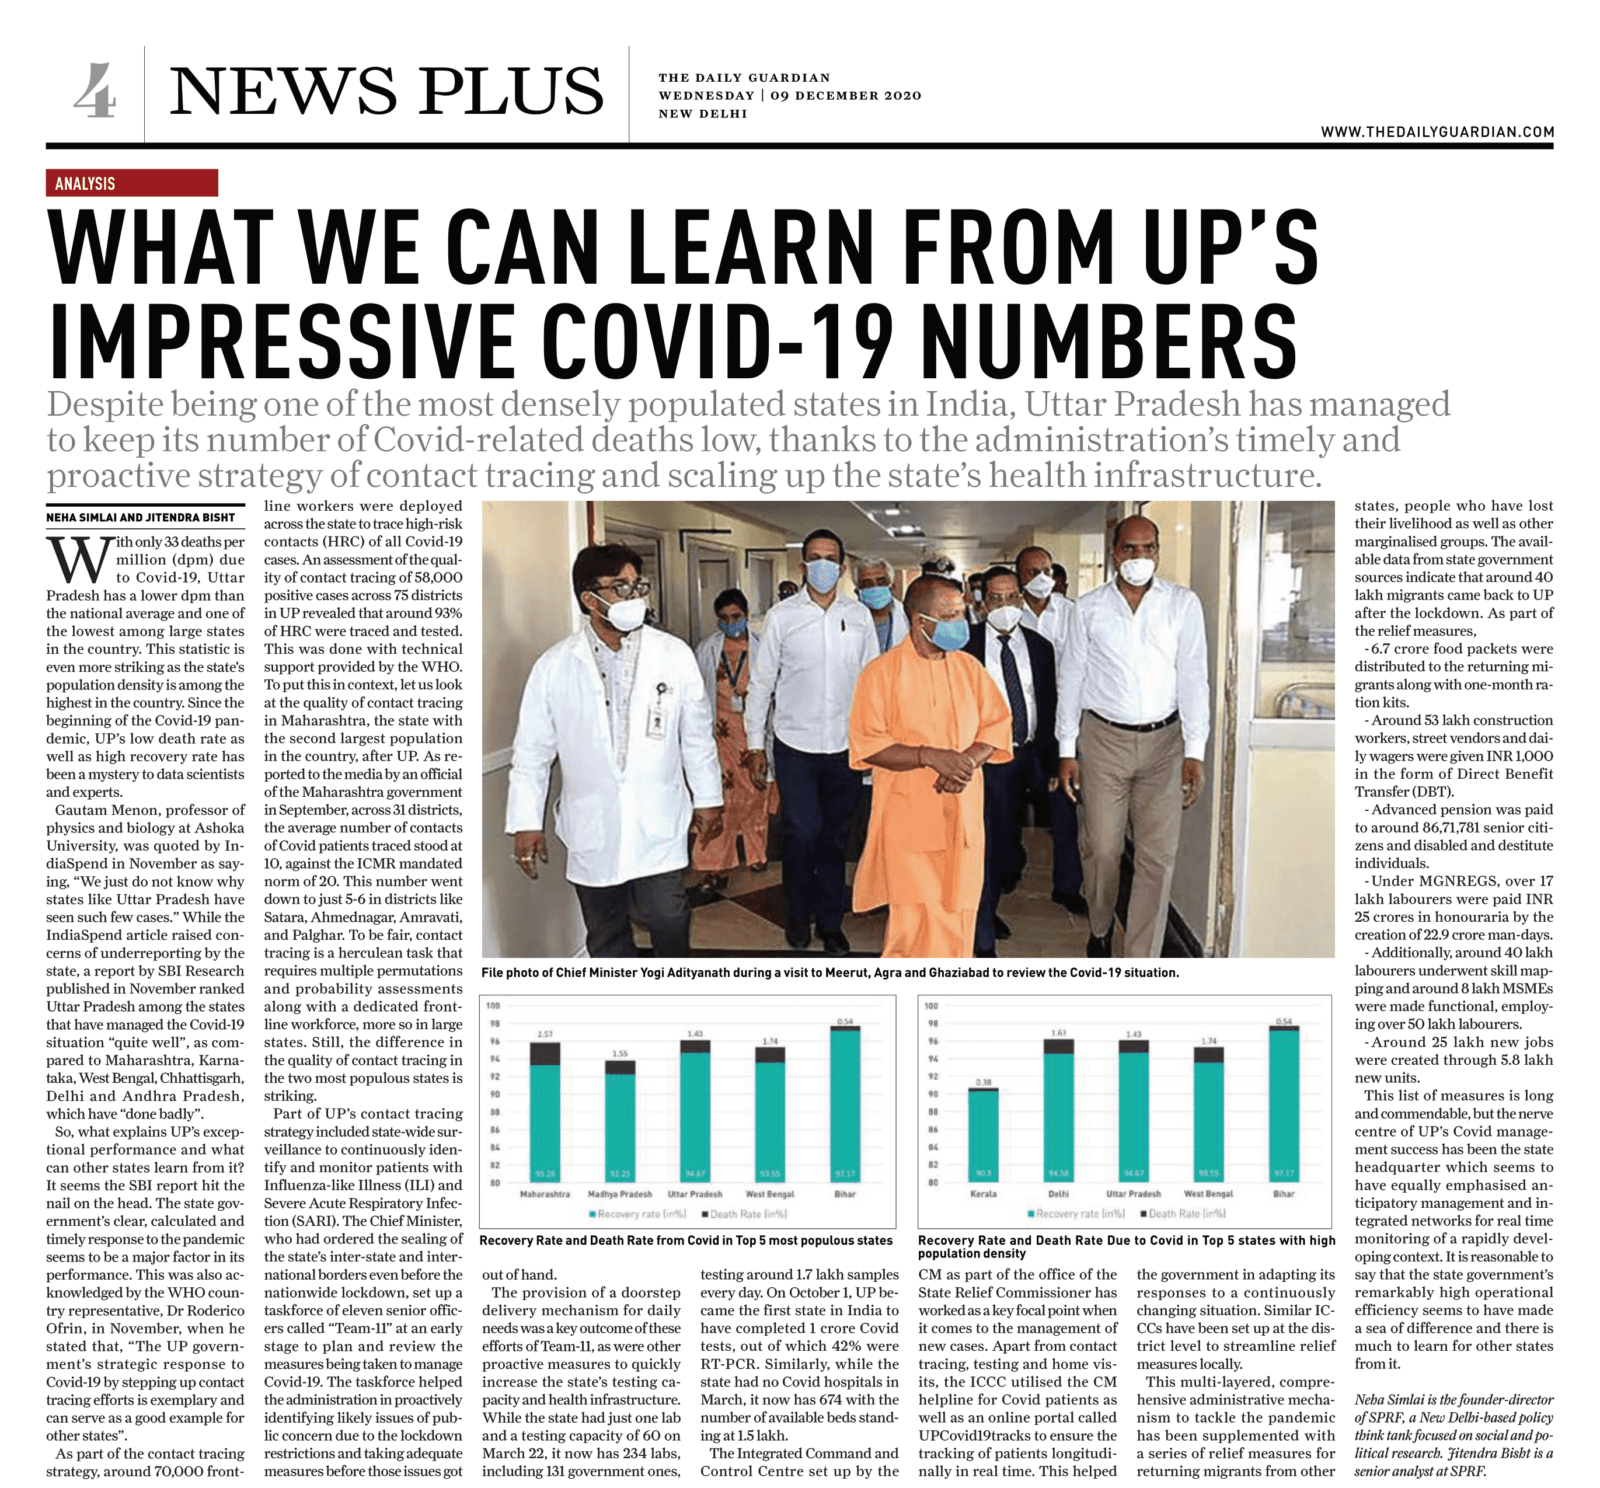 Uttar Pradesh Covid numbers SPRF The daily Guardianbers